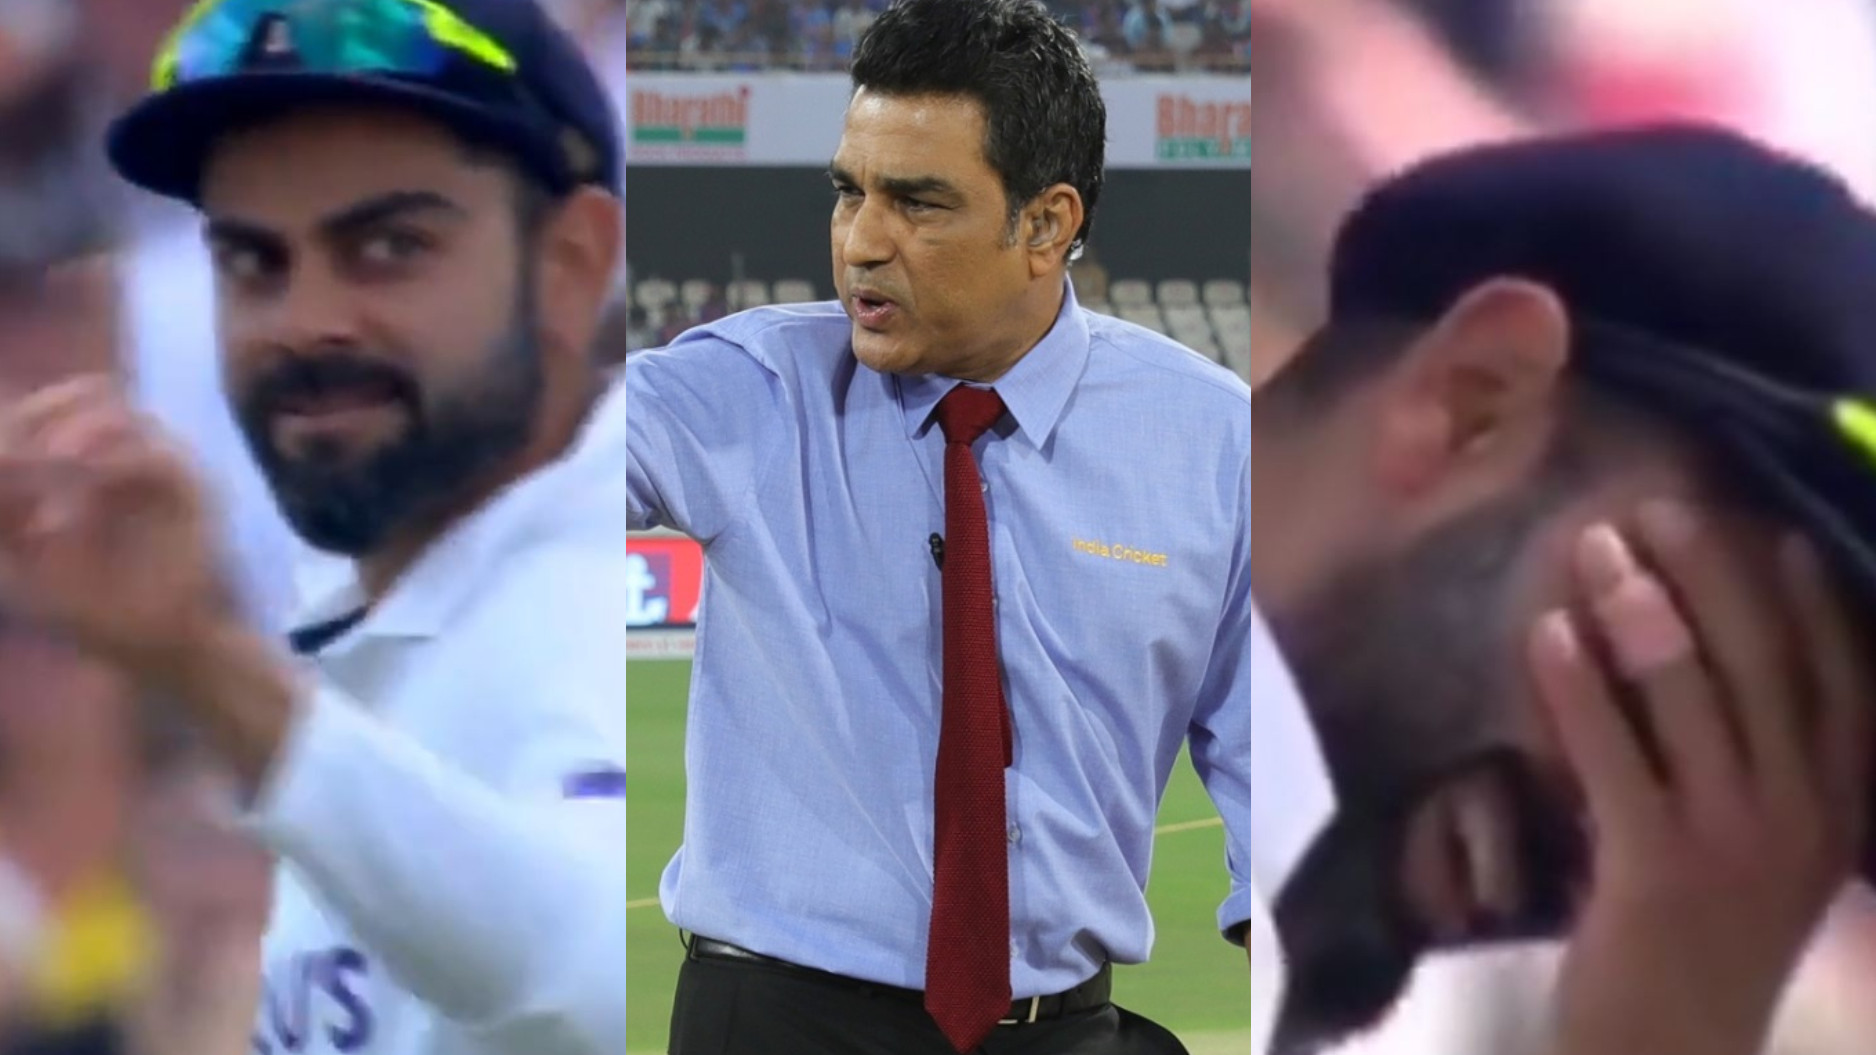 ENG v IND 2021: WATCH- Manjrekar's opposite reactions to Virat Kohli's expressions to two reviews